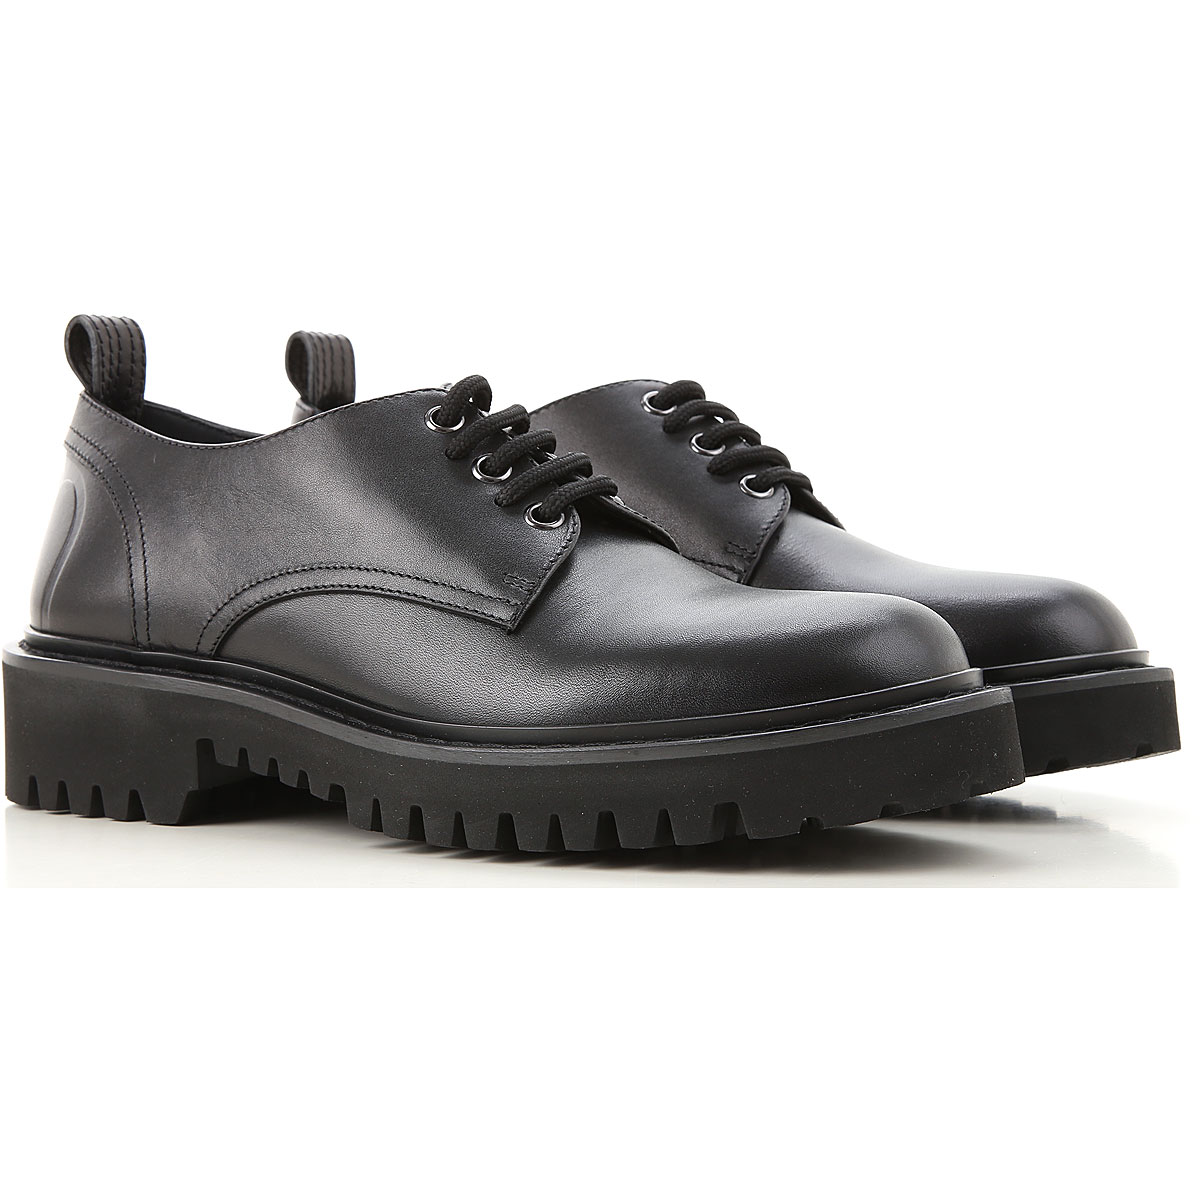 Valentino Garavani Lace Up Shoes for Men Oxfords, Derbies and Brogues On Sale, Black, Leather, 2019, 10 8